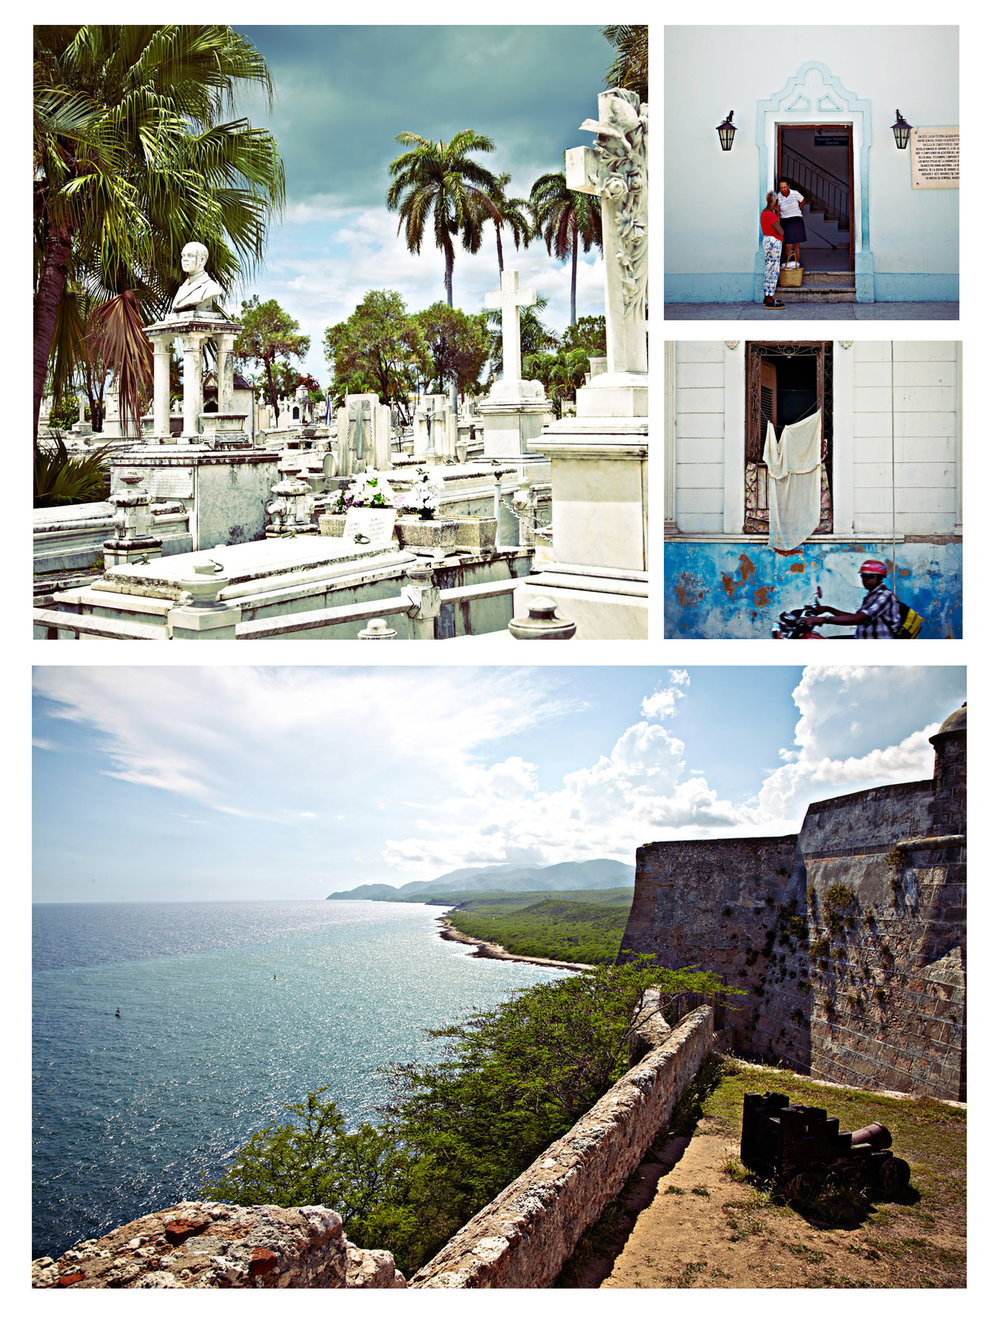 Scenes around Santiago de Cuba (top) Castillo El Morro (castle on the other side of the Havana harbor)